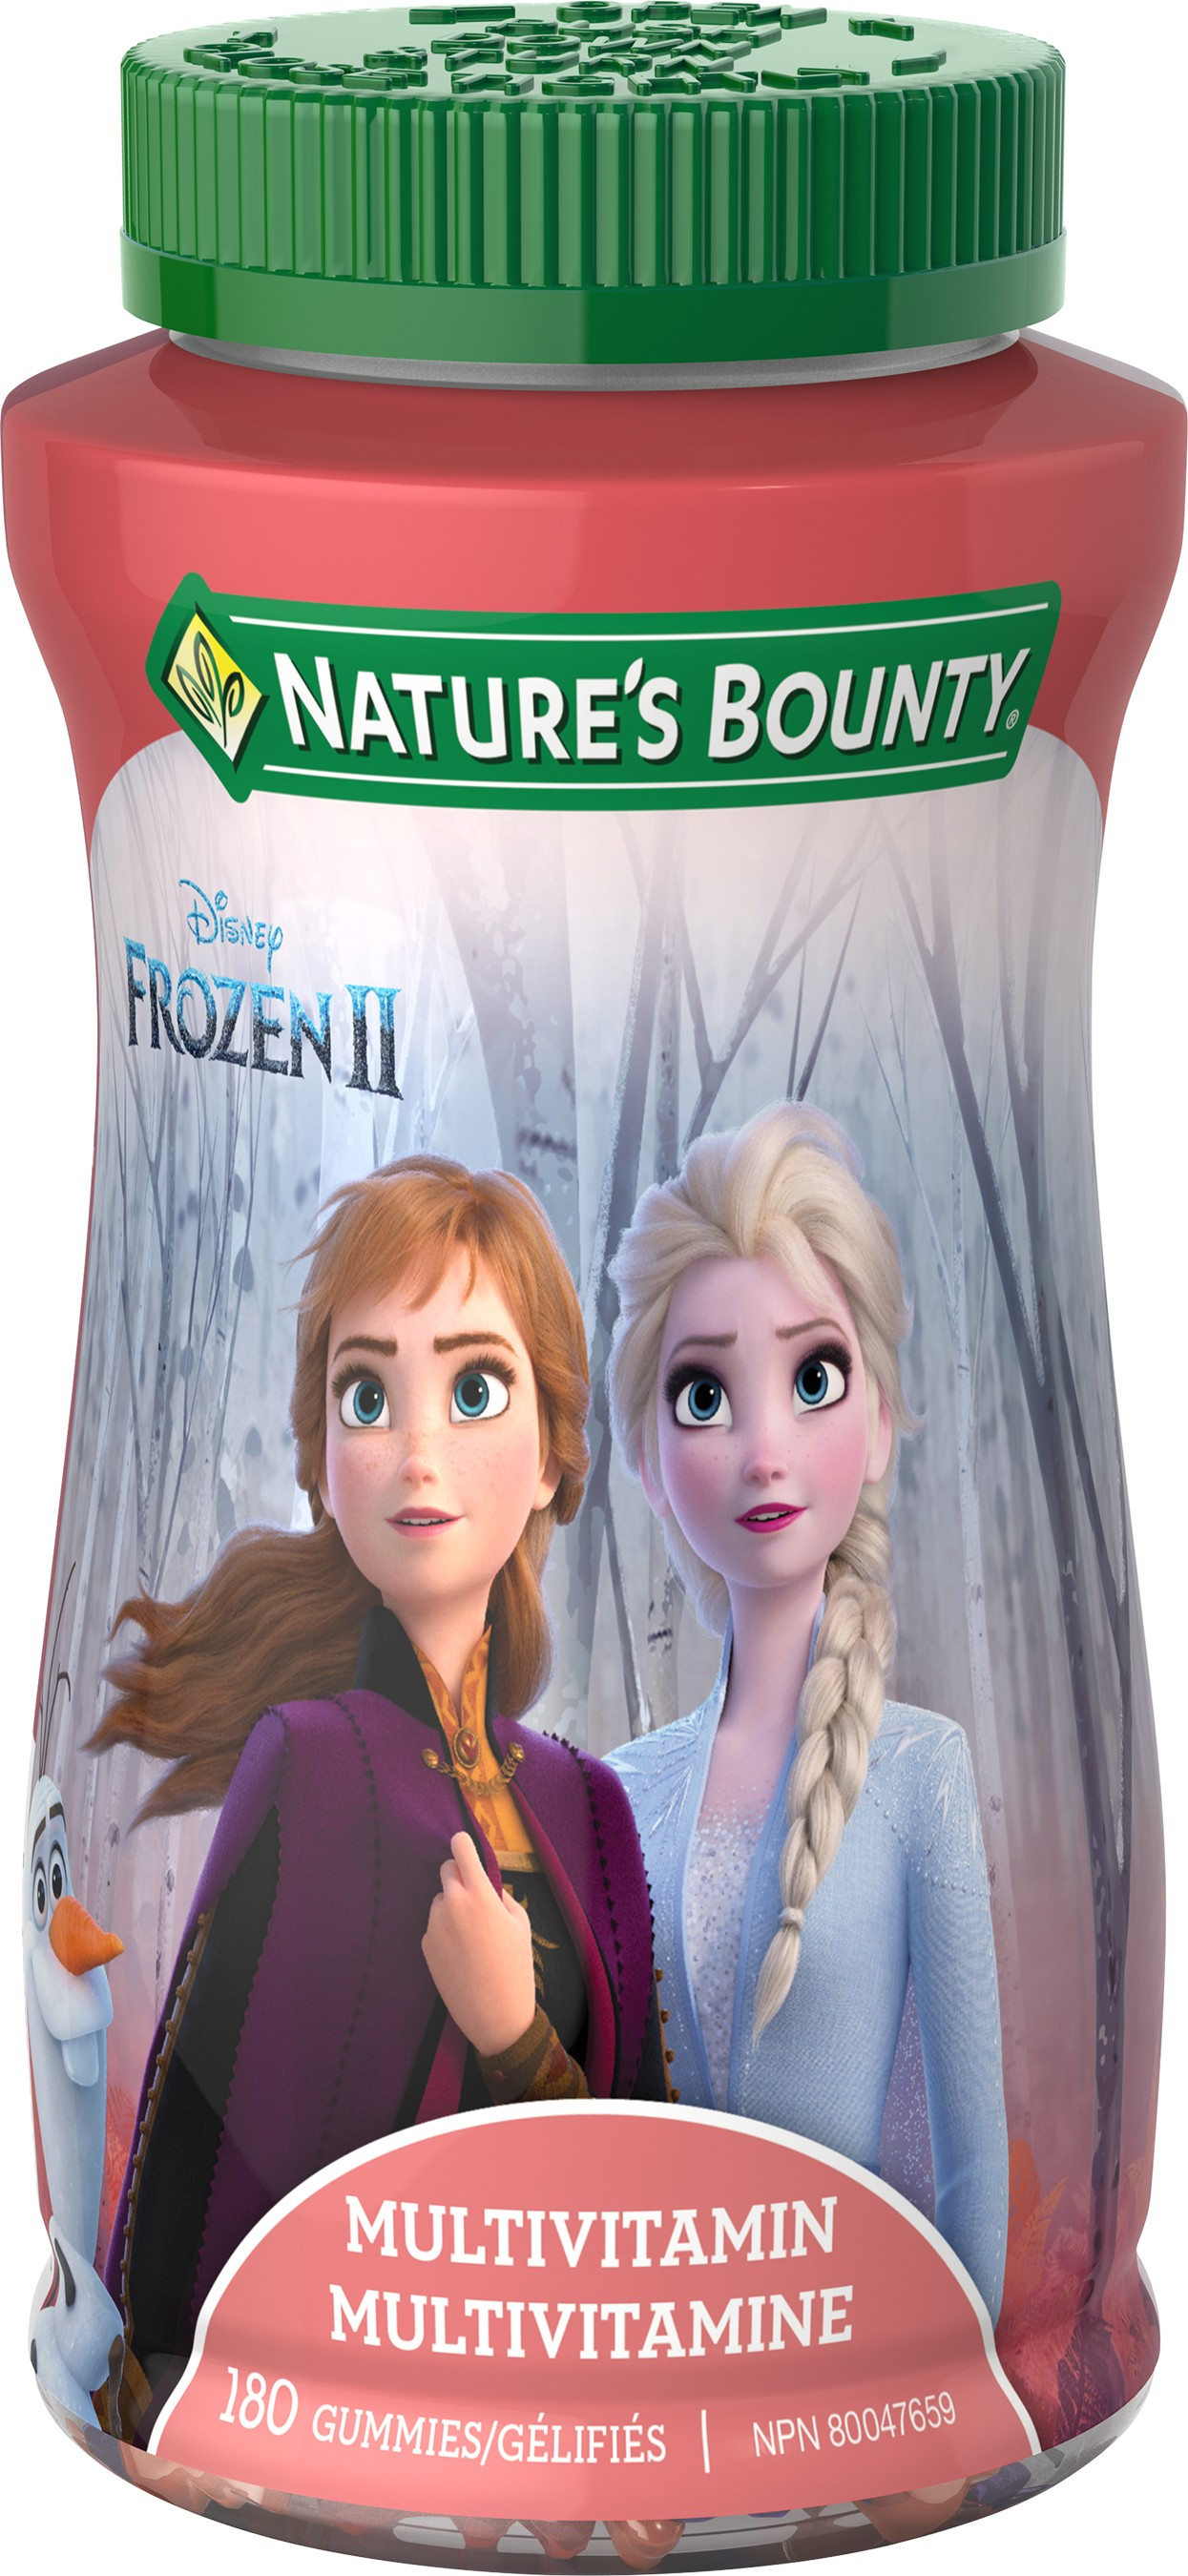 Nature's Bounty Frozen ll Multivitamin Gummies